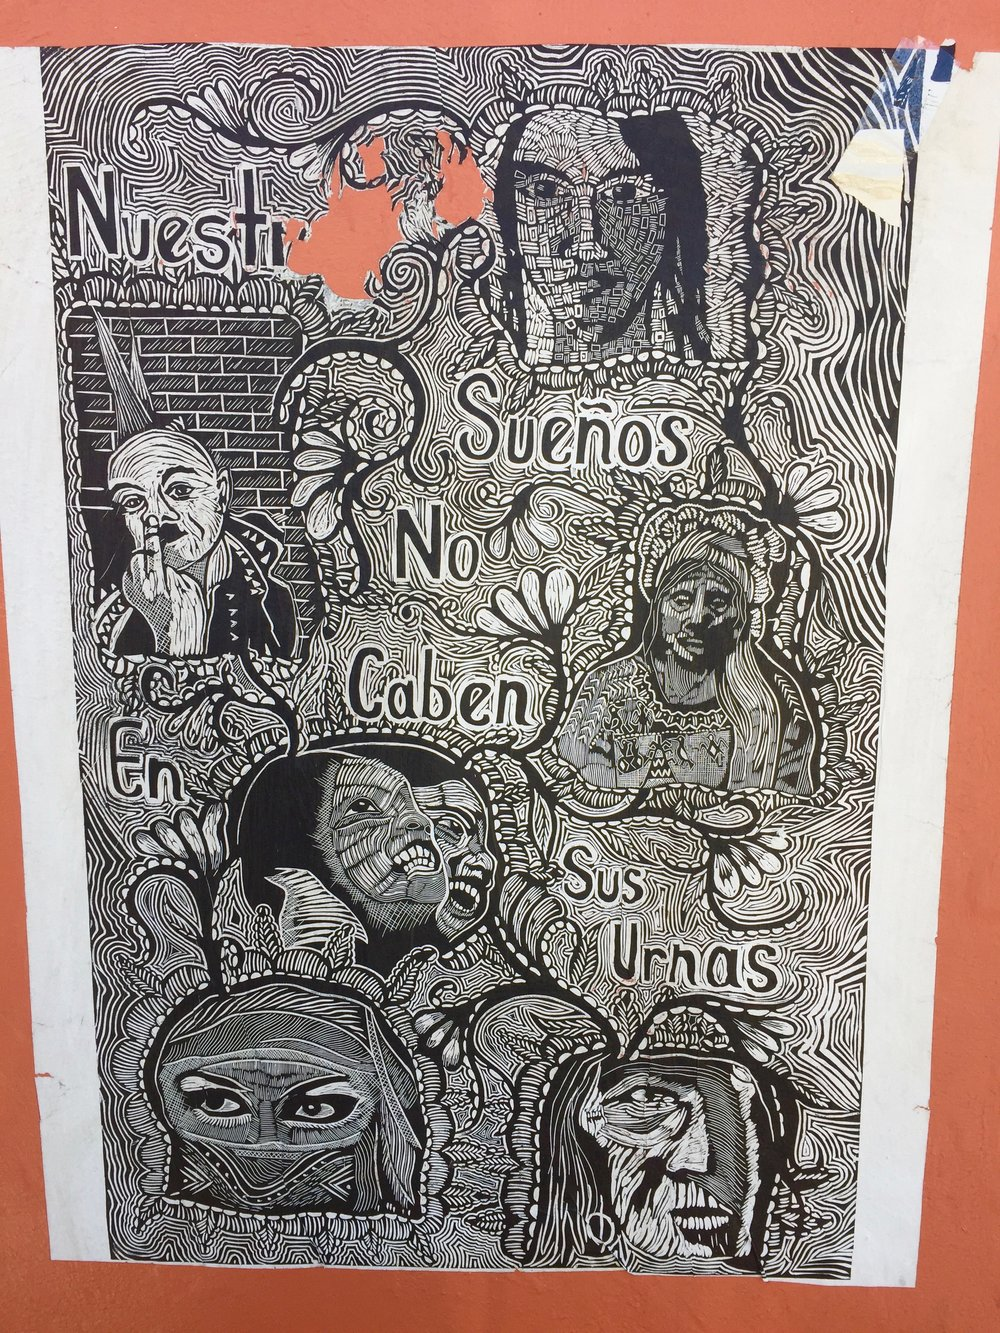 This poster from the streets of Oaxaca city says: Our dreams won't fit your urns. It refers to the 43 teachers kidnapped and murdered by Mexican police in 2014.